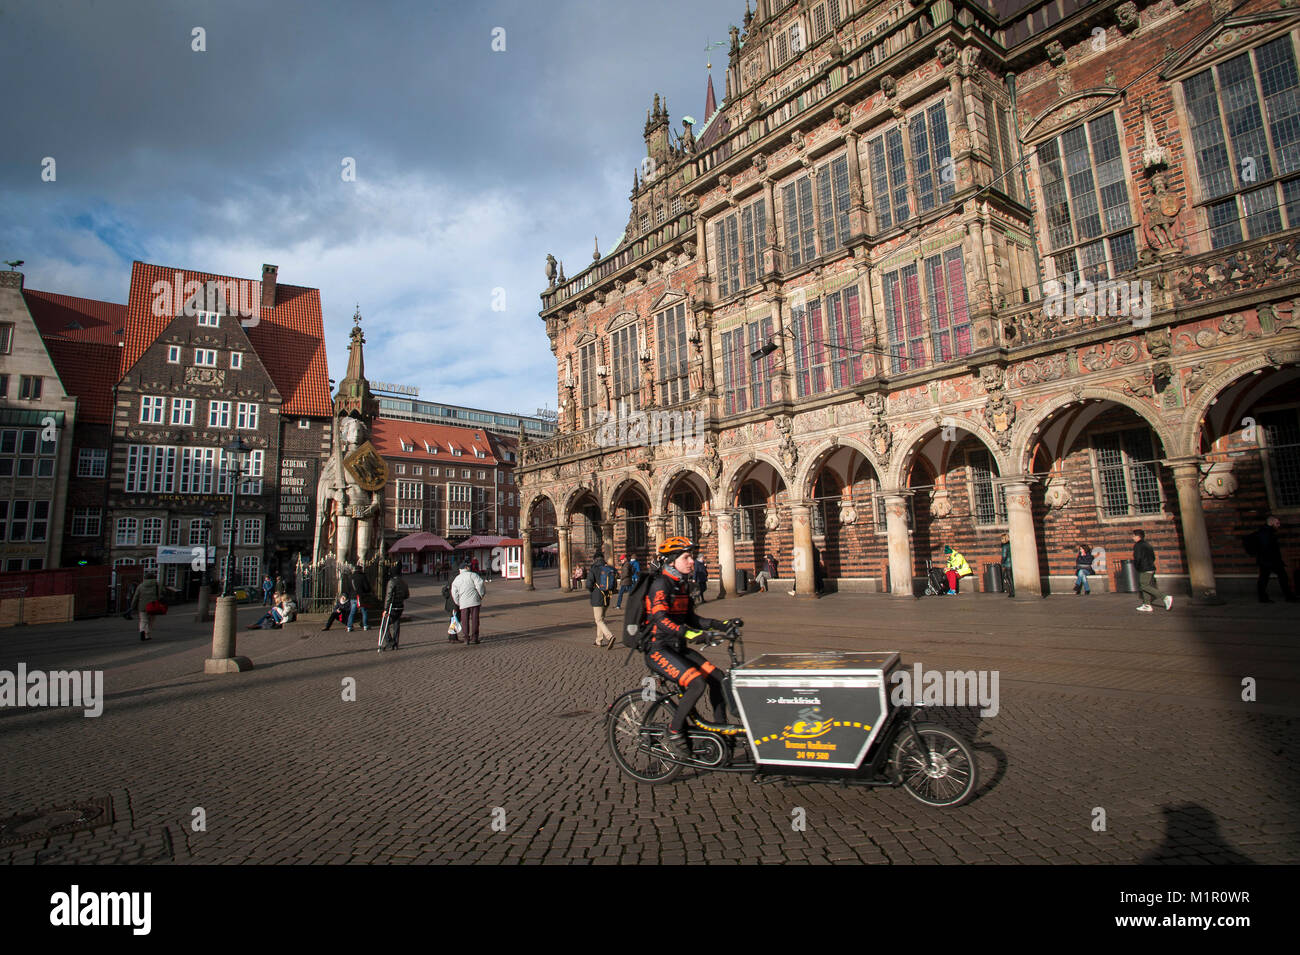 Daily life at The Am Markt, in the centre of historical Bremen, Germany. - Stock Image